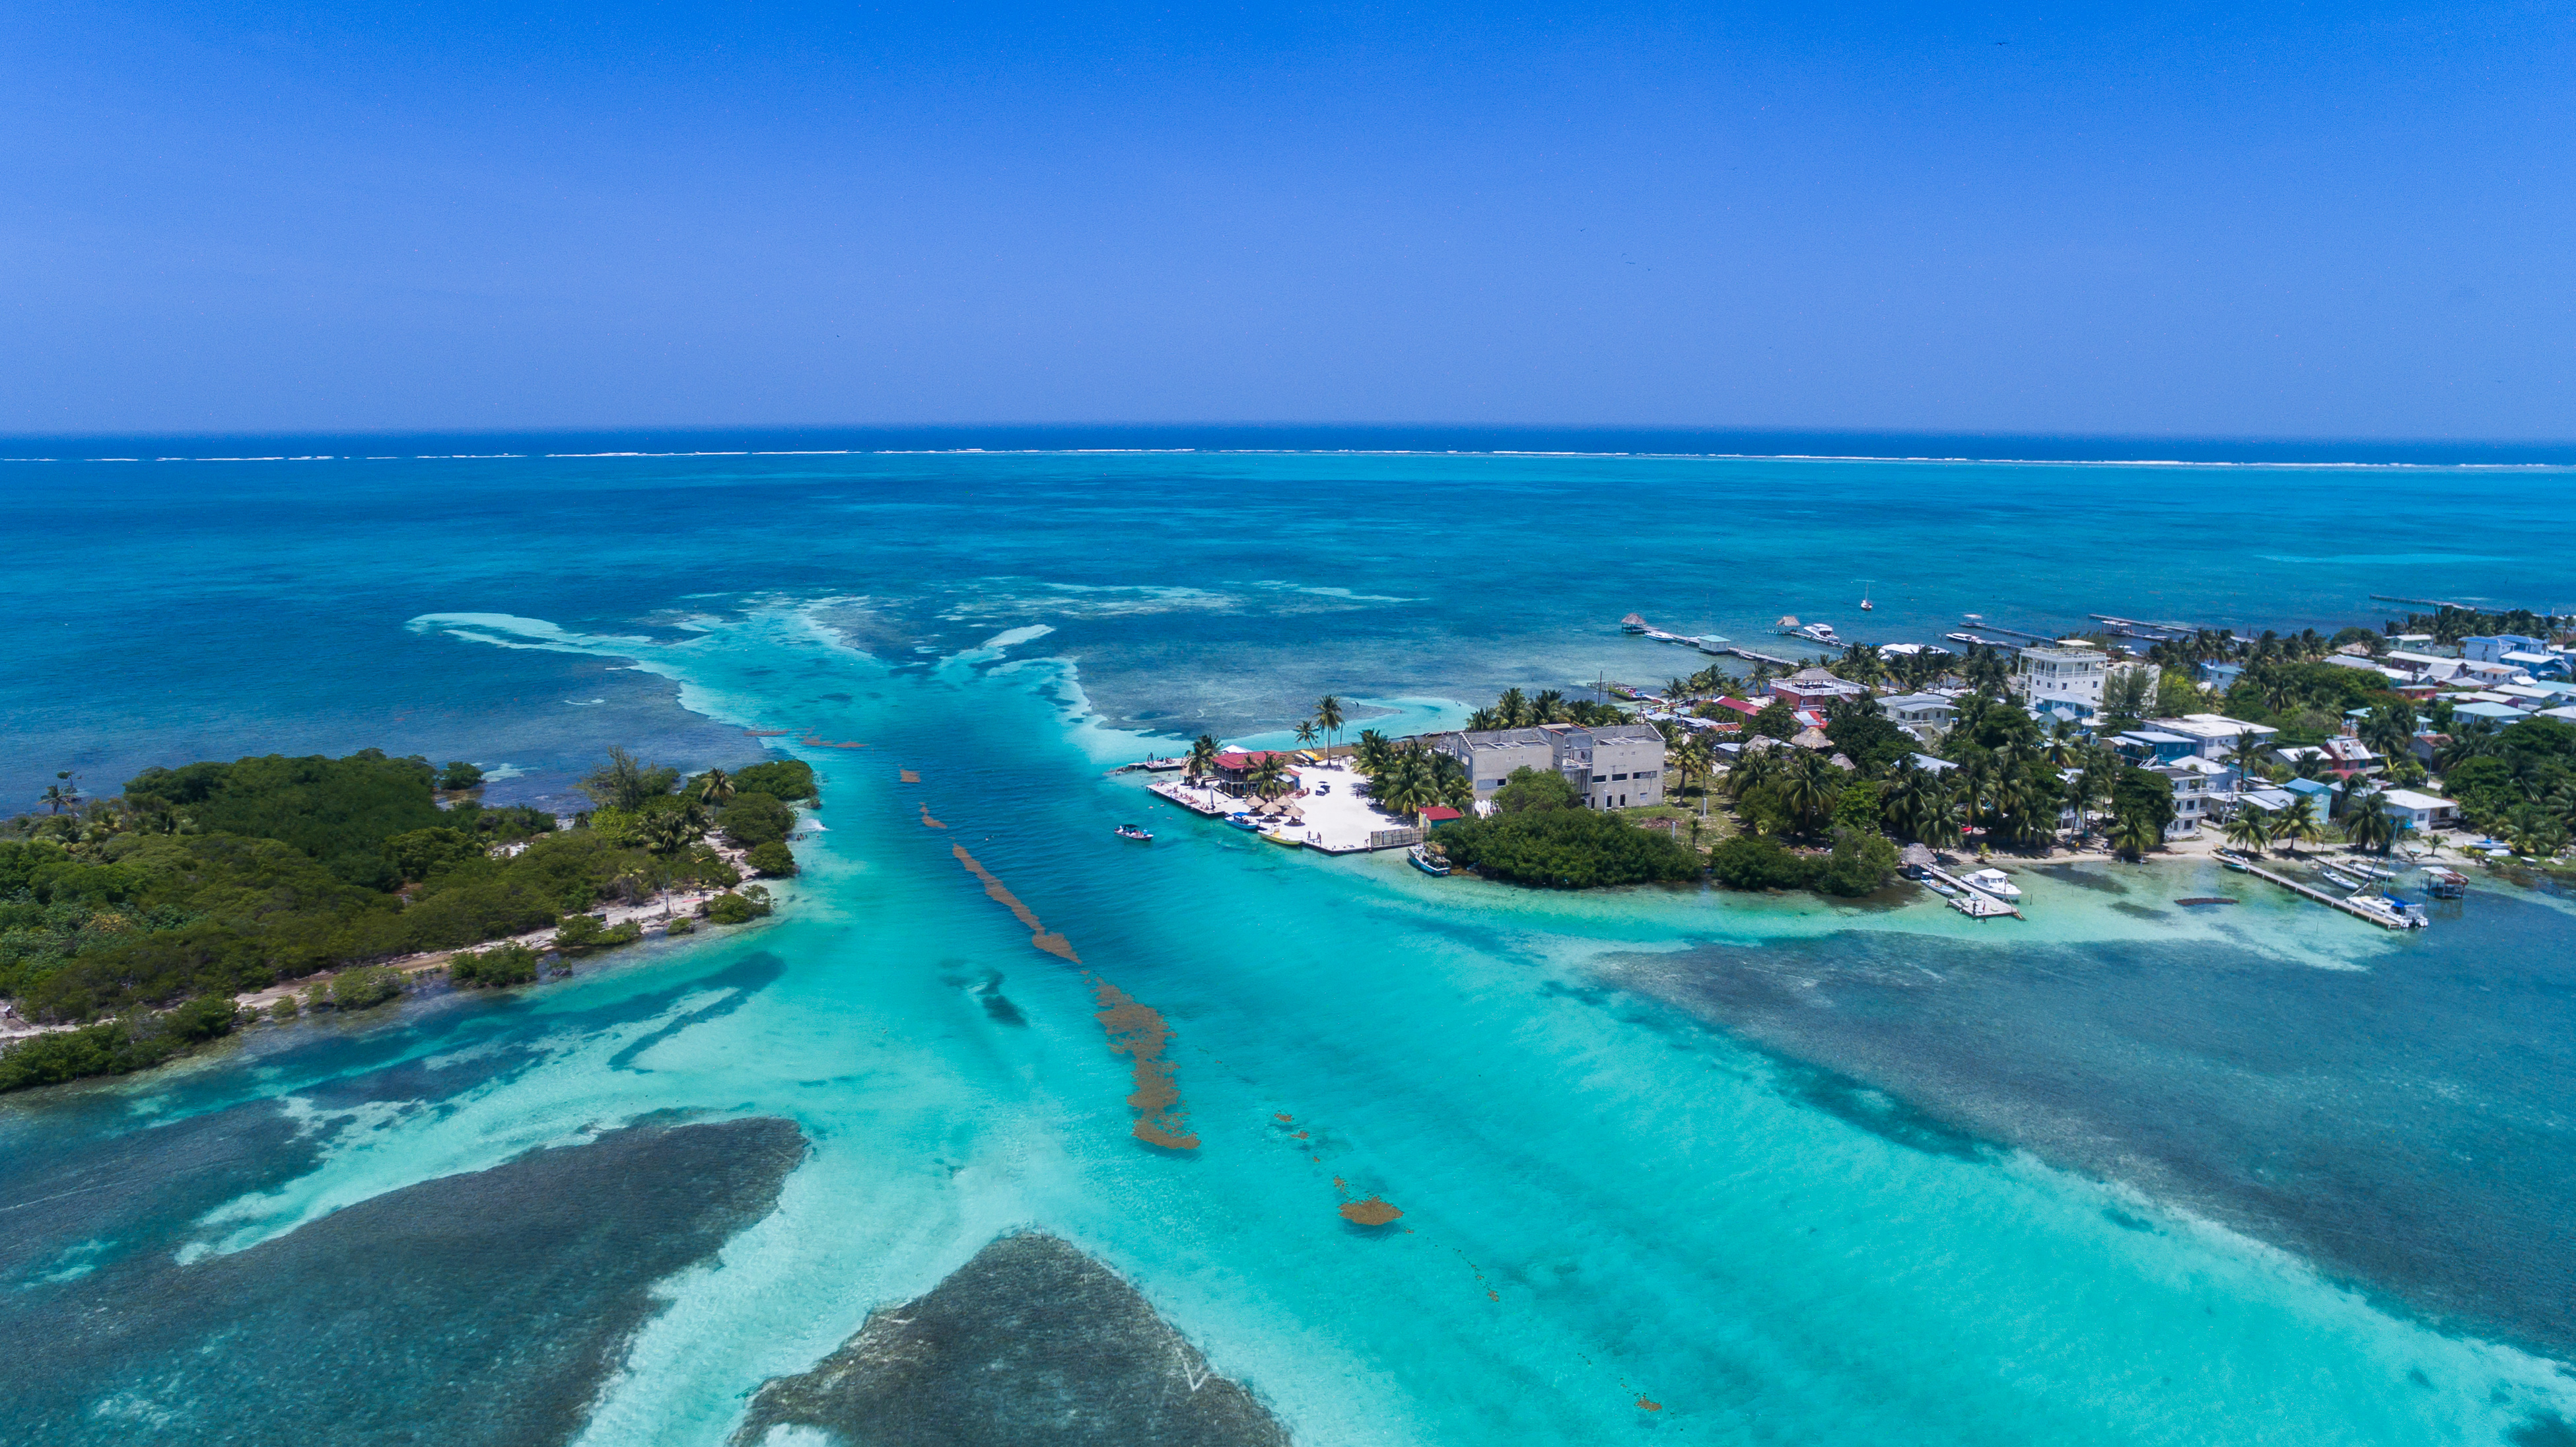 drone with video camera with File Caye Caulker Split Belize Drone  20688794928 on Verdun Highway Ile Maurice Montagne Longue Scenery Peter Both Mauritius Mountain Ranges 3 in addition Meilleurs Drones Acheter Offrir 39829266 furthermore Assos Village In Cephalonia Greece furthermore Pokemon additionally File Caye Caulker Split Belize drone  20688794928.